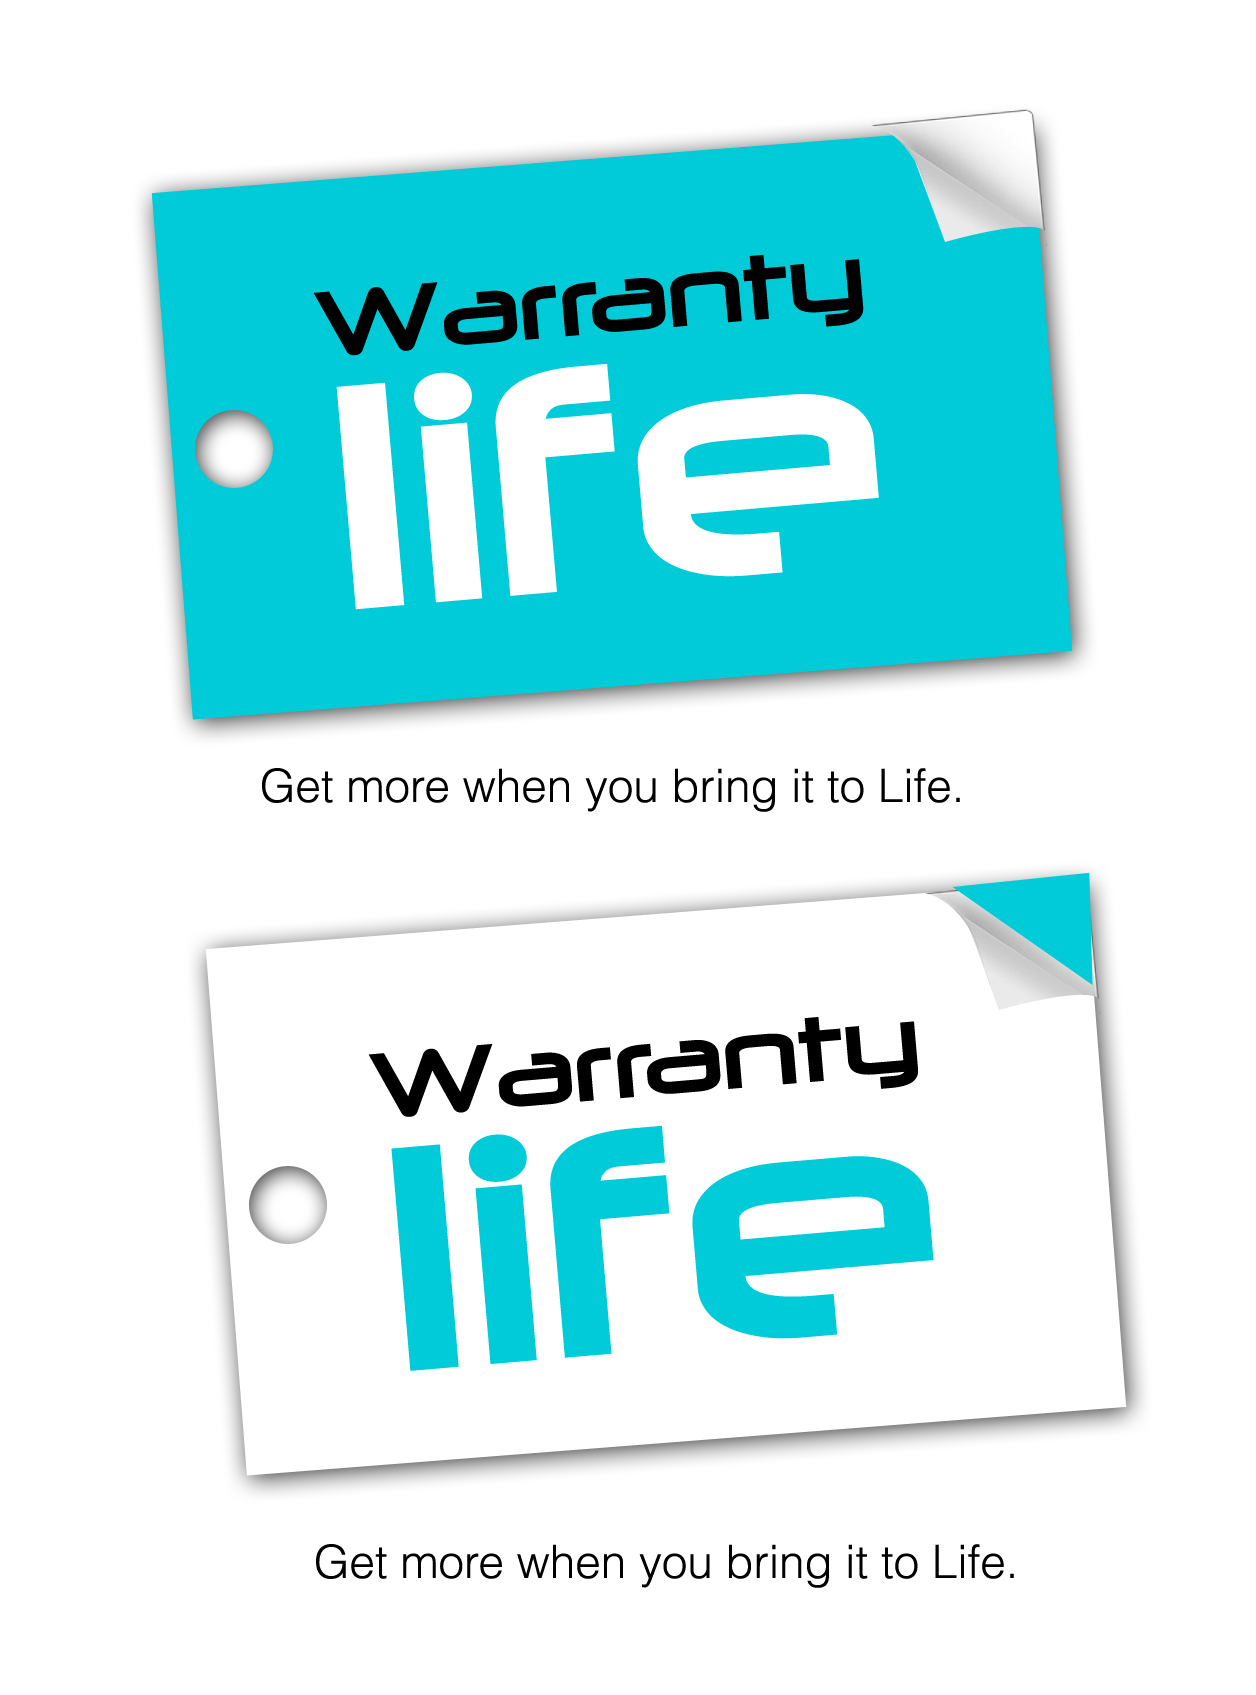 Logo Design by Lama Creative - Entry No. 110 in the Logo Design Contest WarrantyLife Logo Design.